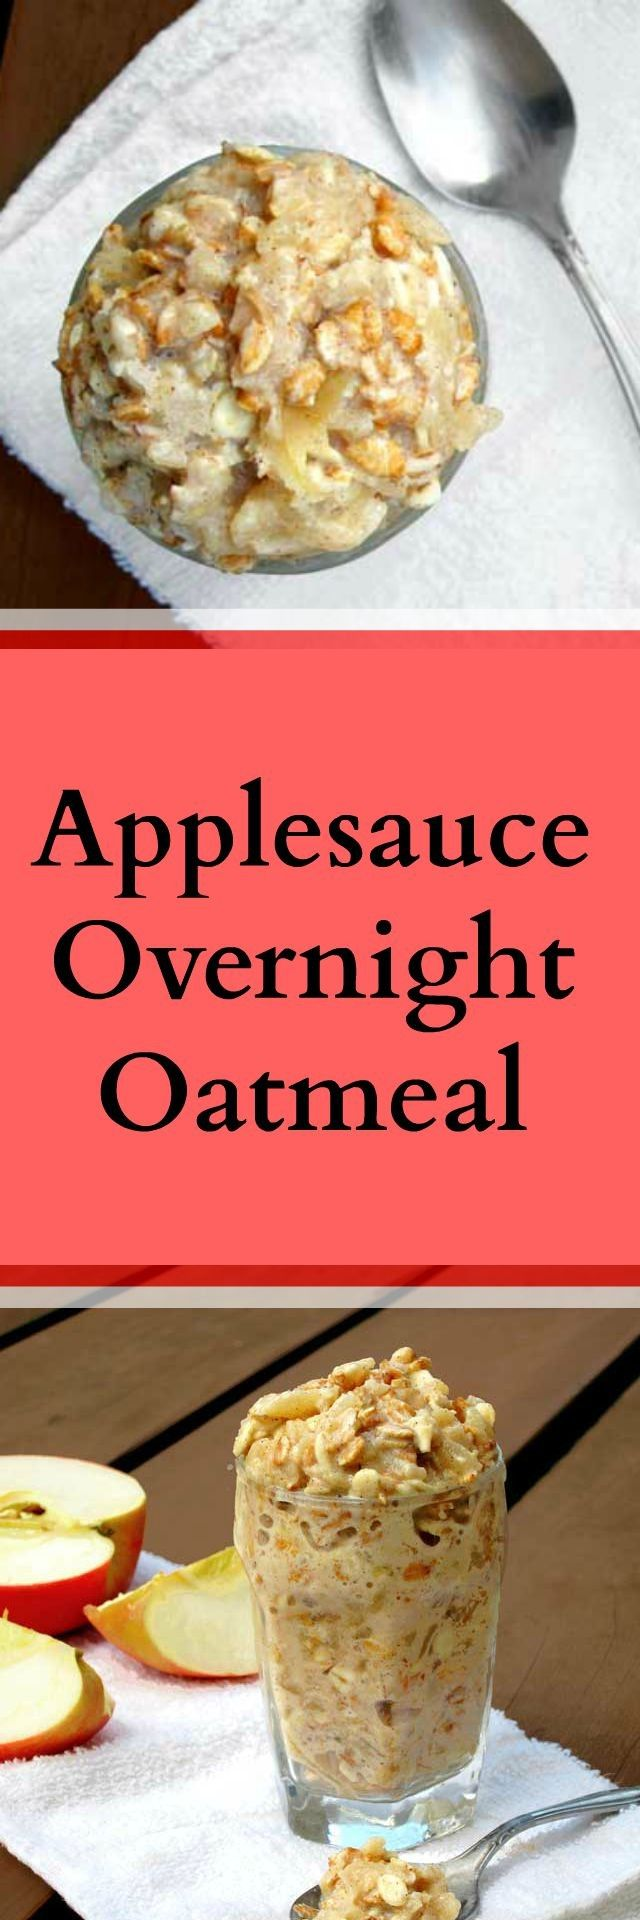 Applesauce overnight oatmeal recipe. Make breakfast the night before - and it's ready for you in the morning! Repin to save.